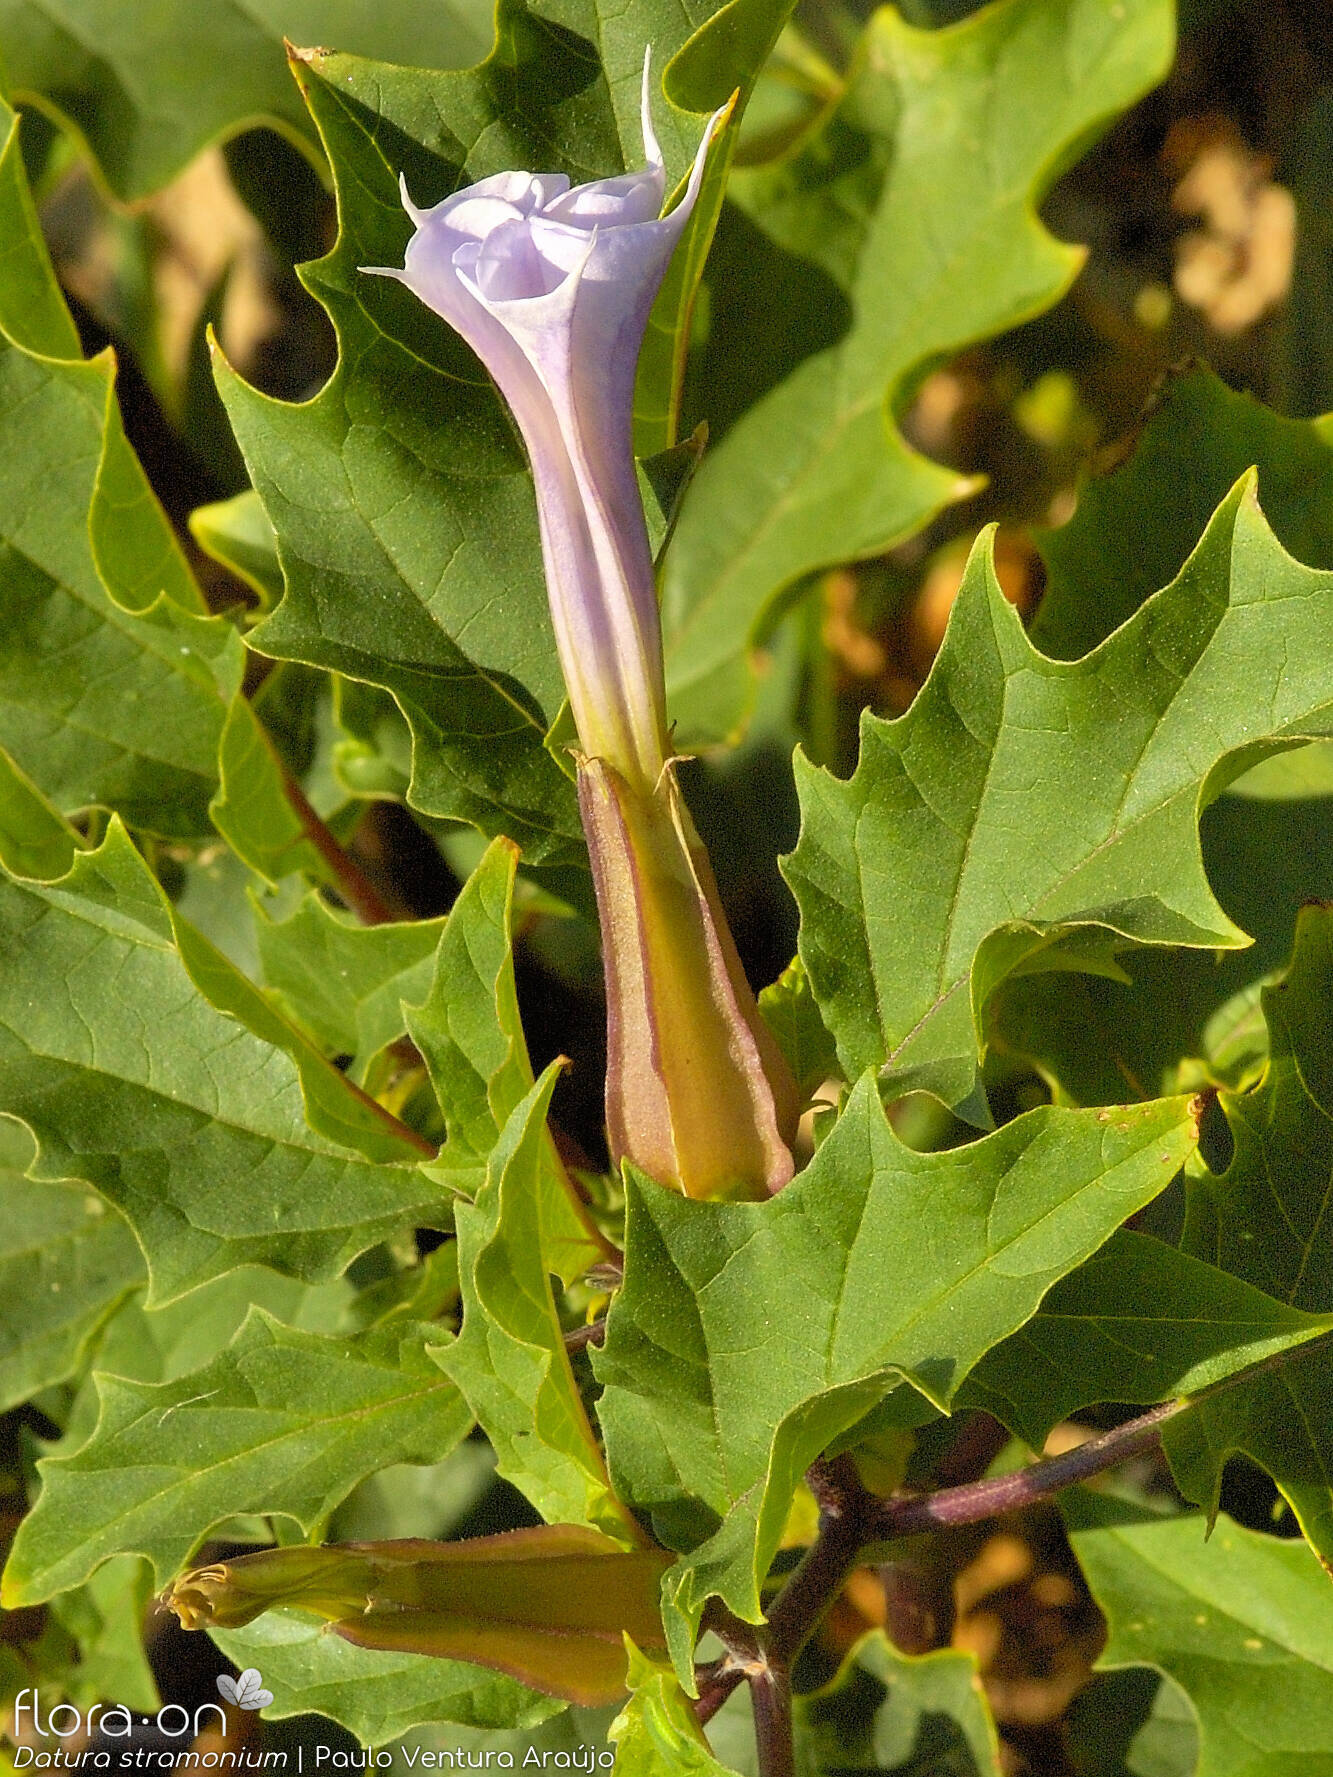 Datura stramonium - Flor (close-up) | Paulo Ventura Araújo; CC BY-NC 4.0